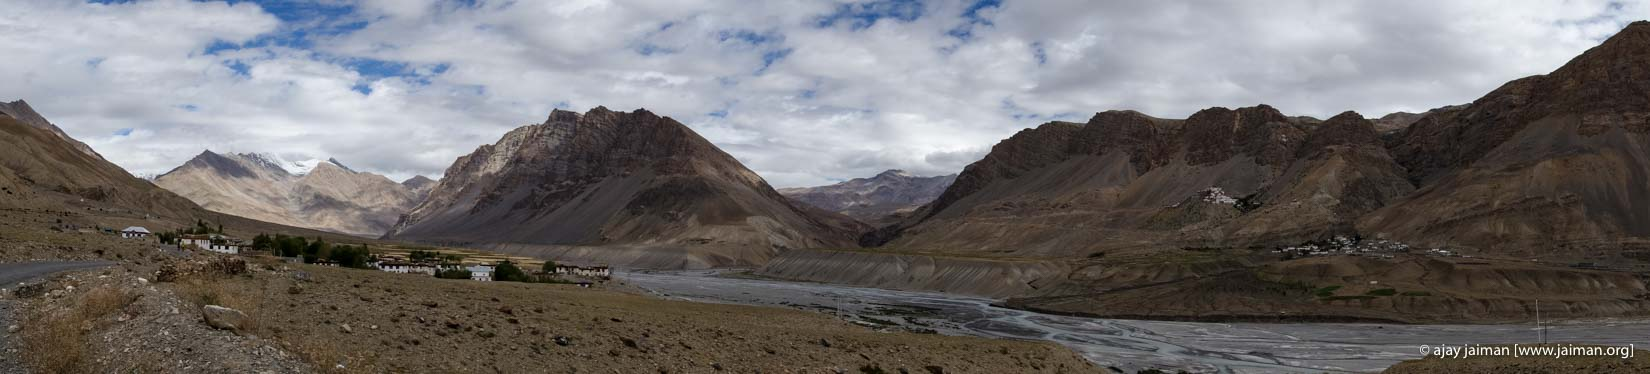 Desolate Spitian landscape. The Ki Gompa is on the right